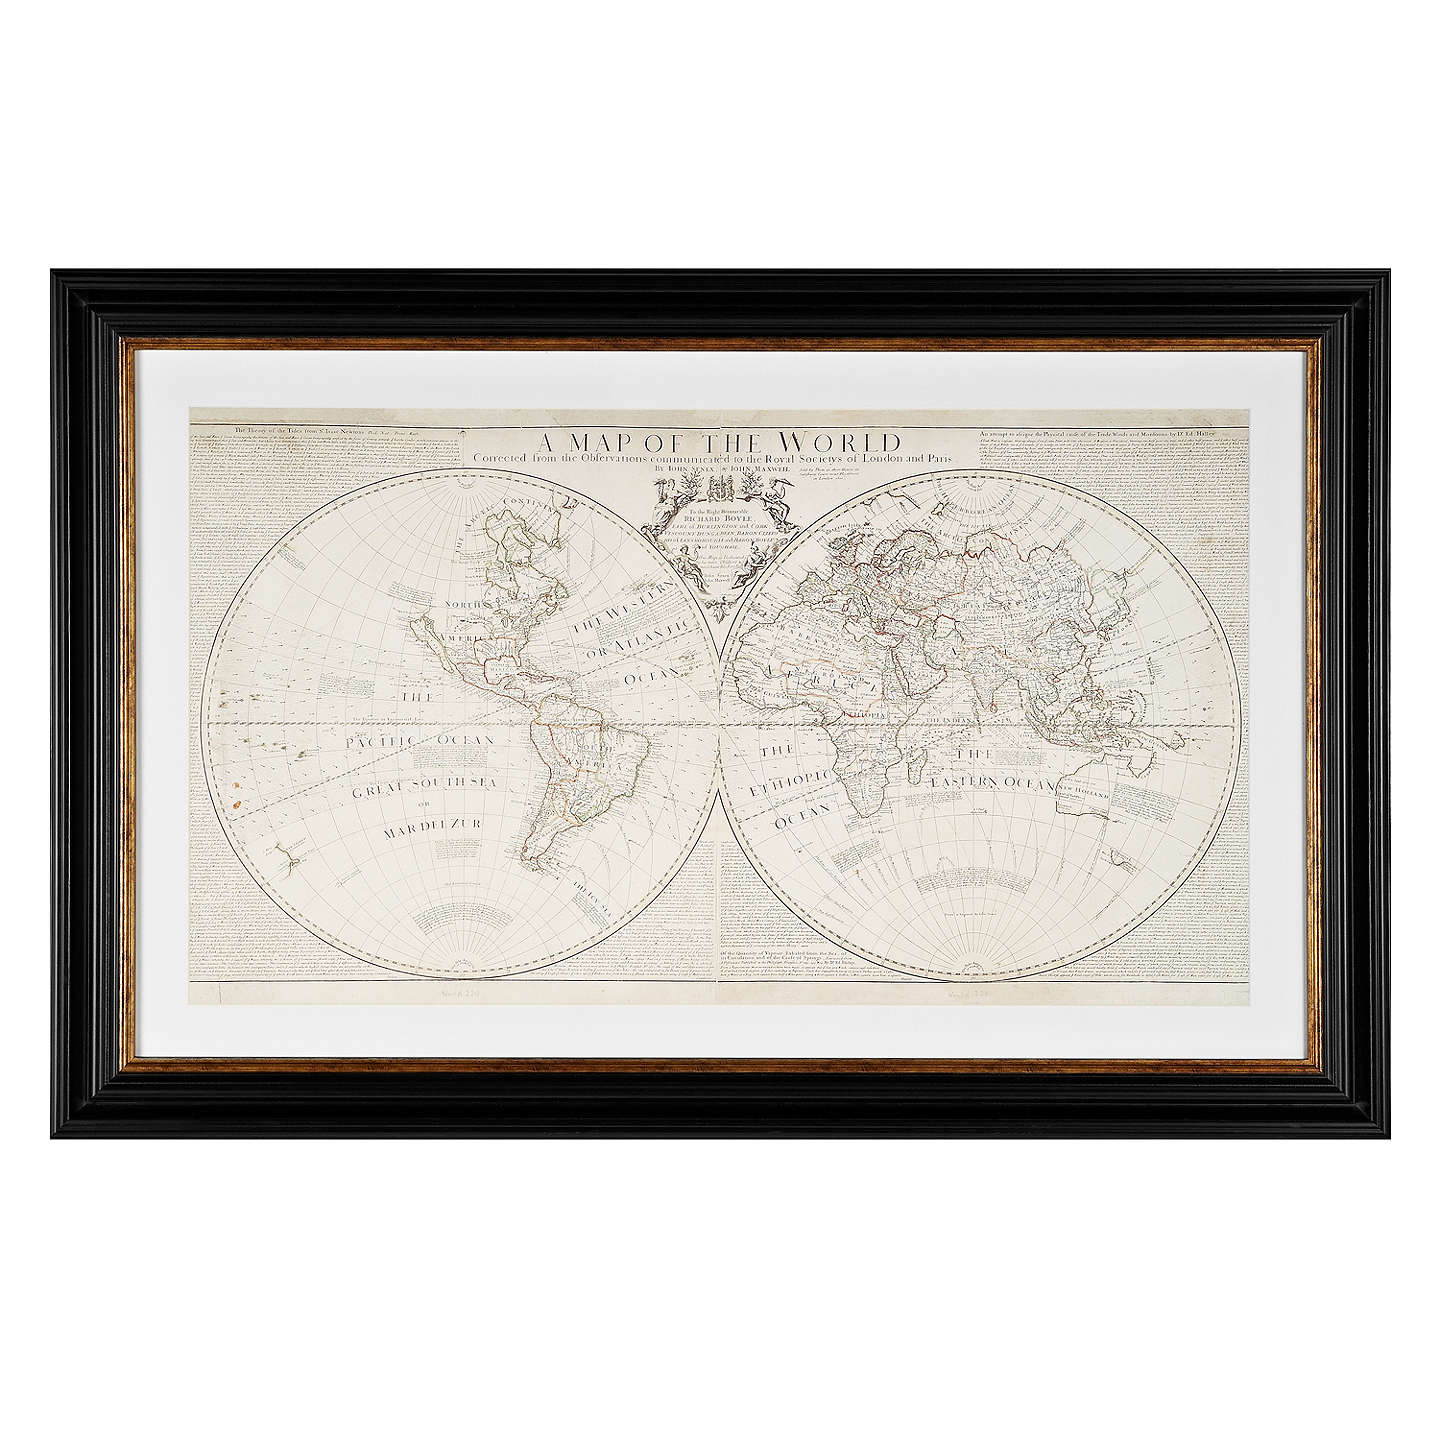 Anonymous world map framed print 74 x 108cm at john lewis buyanonymous world map framed print 74 x 108cm online at johnlewis gumiabroncs Image collections